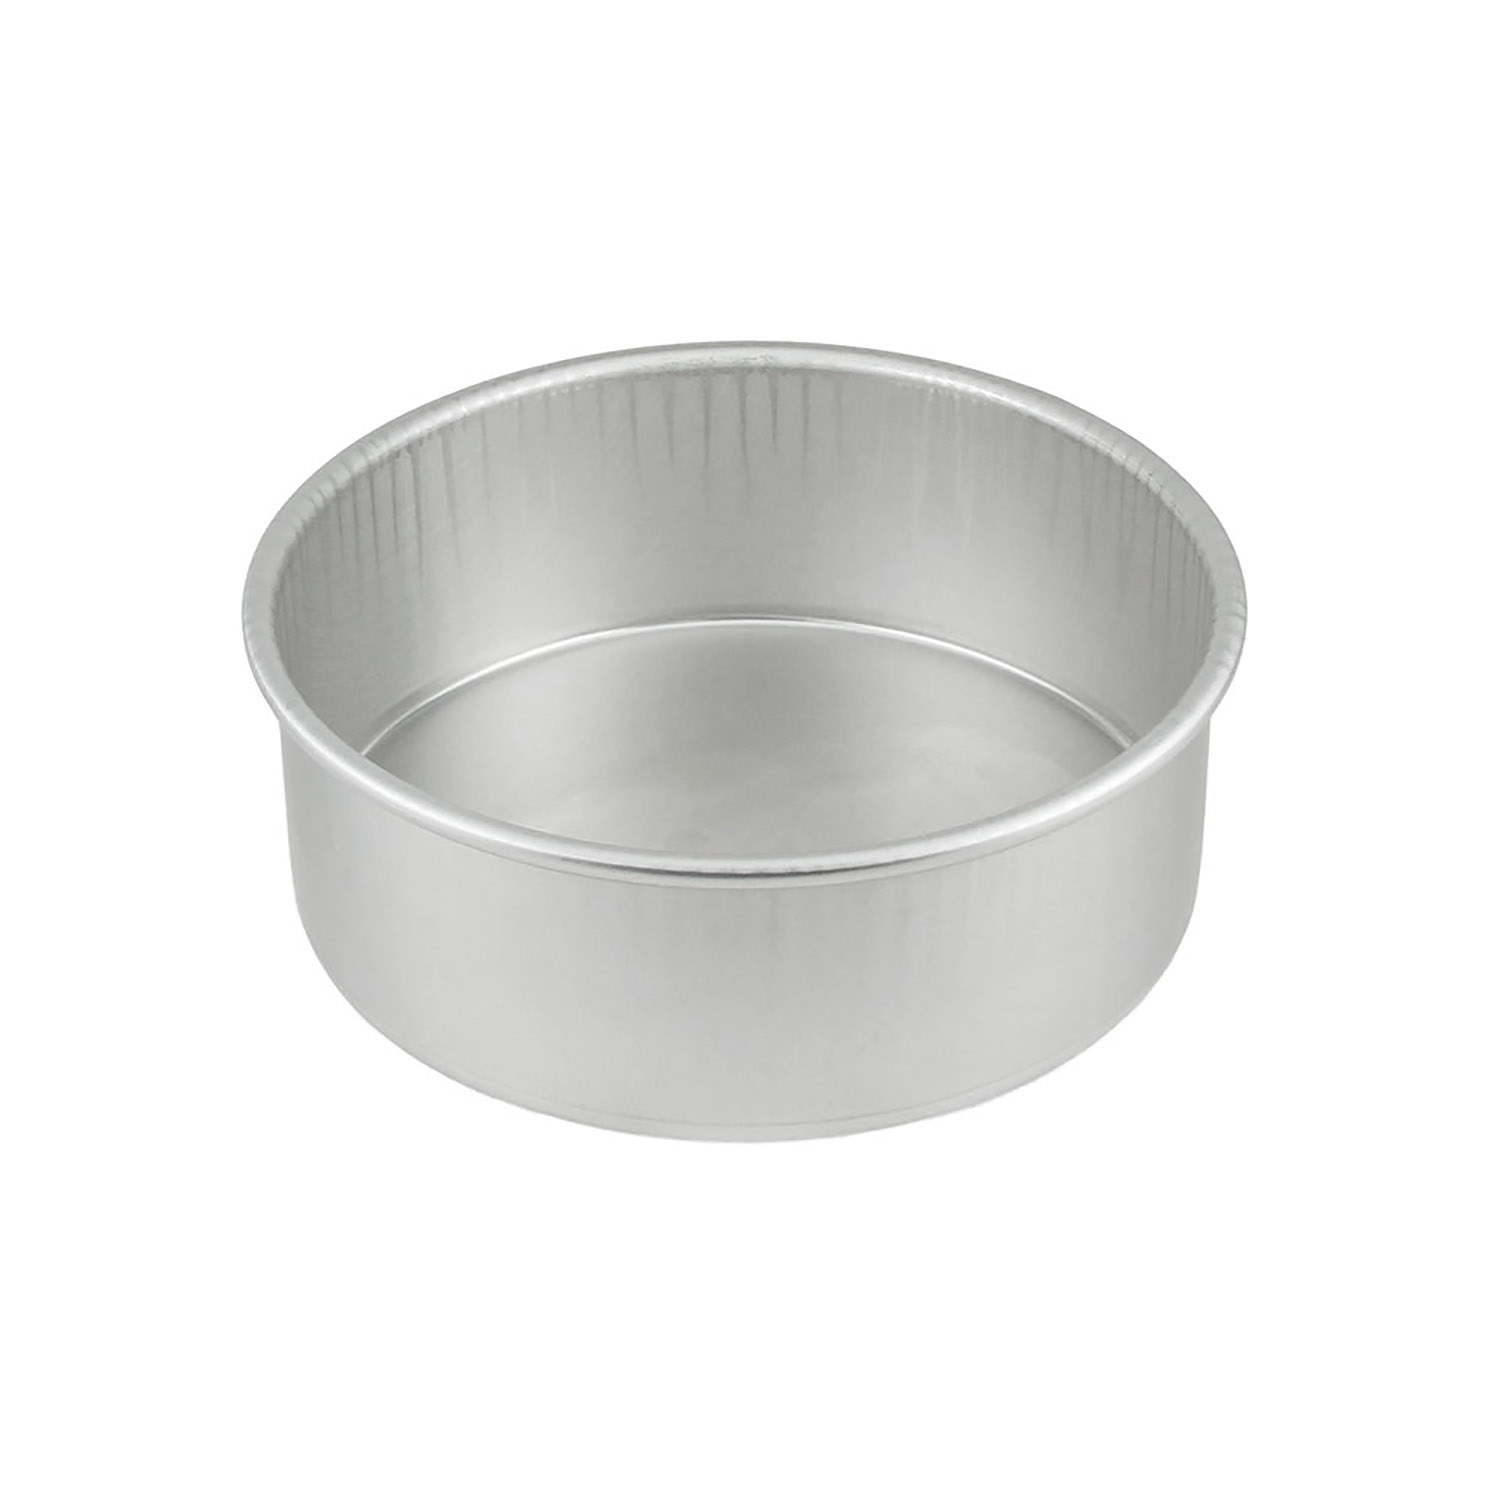 "8 x 3"" Magic Line Round Cake Pan"